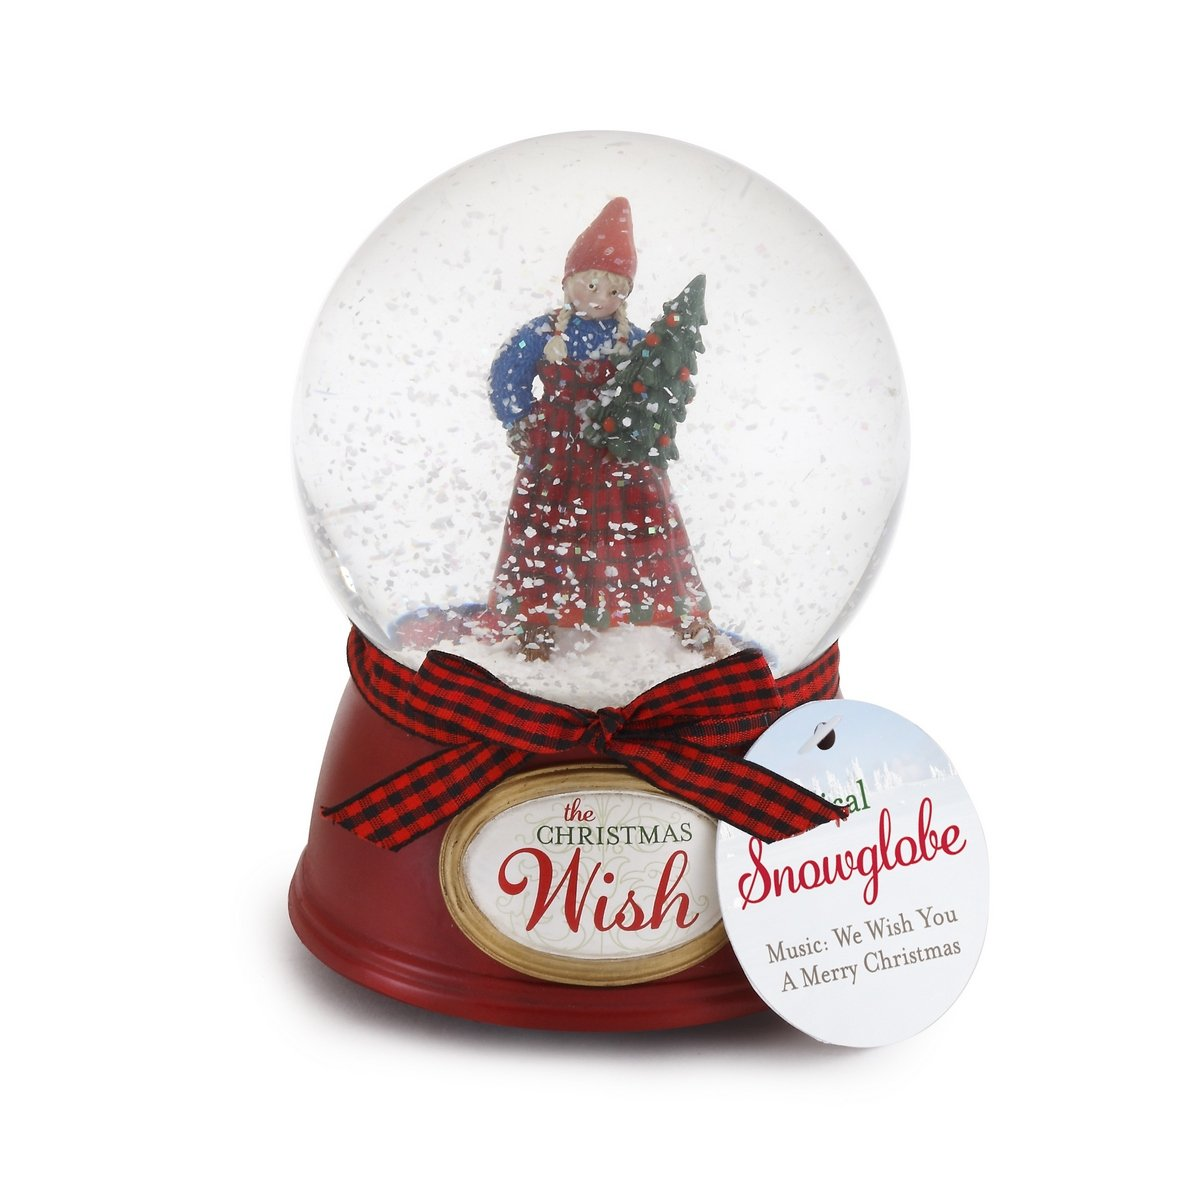 【あす楽対応】 The Christmas Christmas Wish Anja Globe on Polar Bear Musical Snow Anja Globe B01BECS5YK, プリントポット:7c223395 --- arianechie.dominiotemporario.com